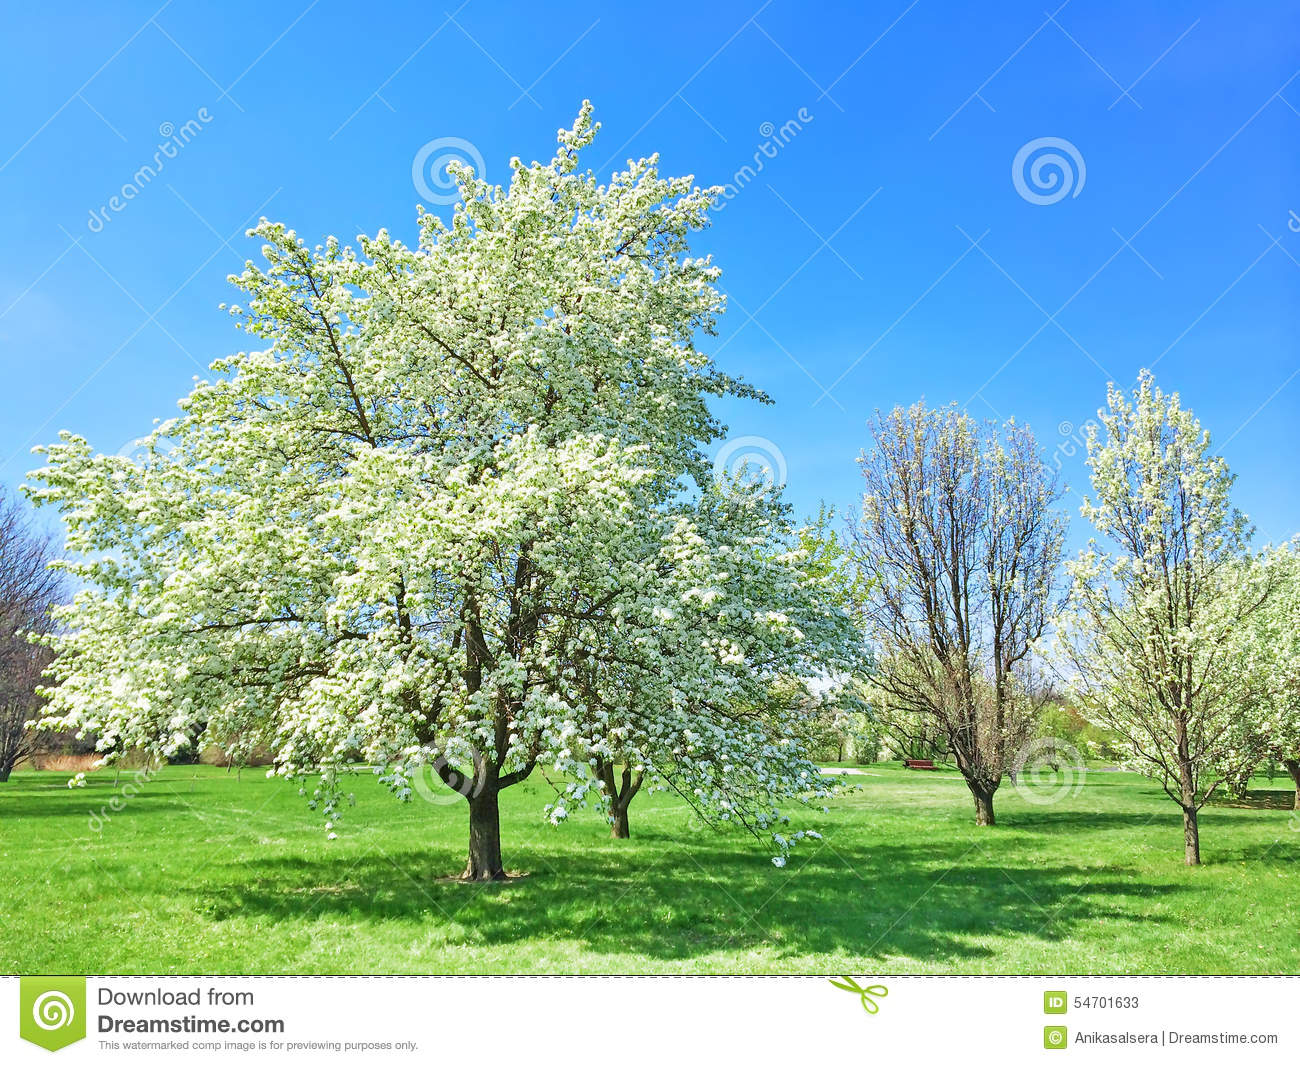 Beau Jardin De Floraison D 39 Arbre Au Printemps Photo Stock